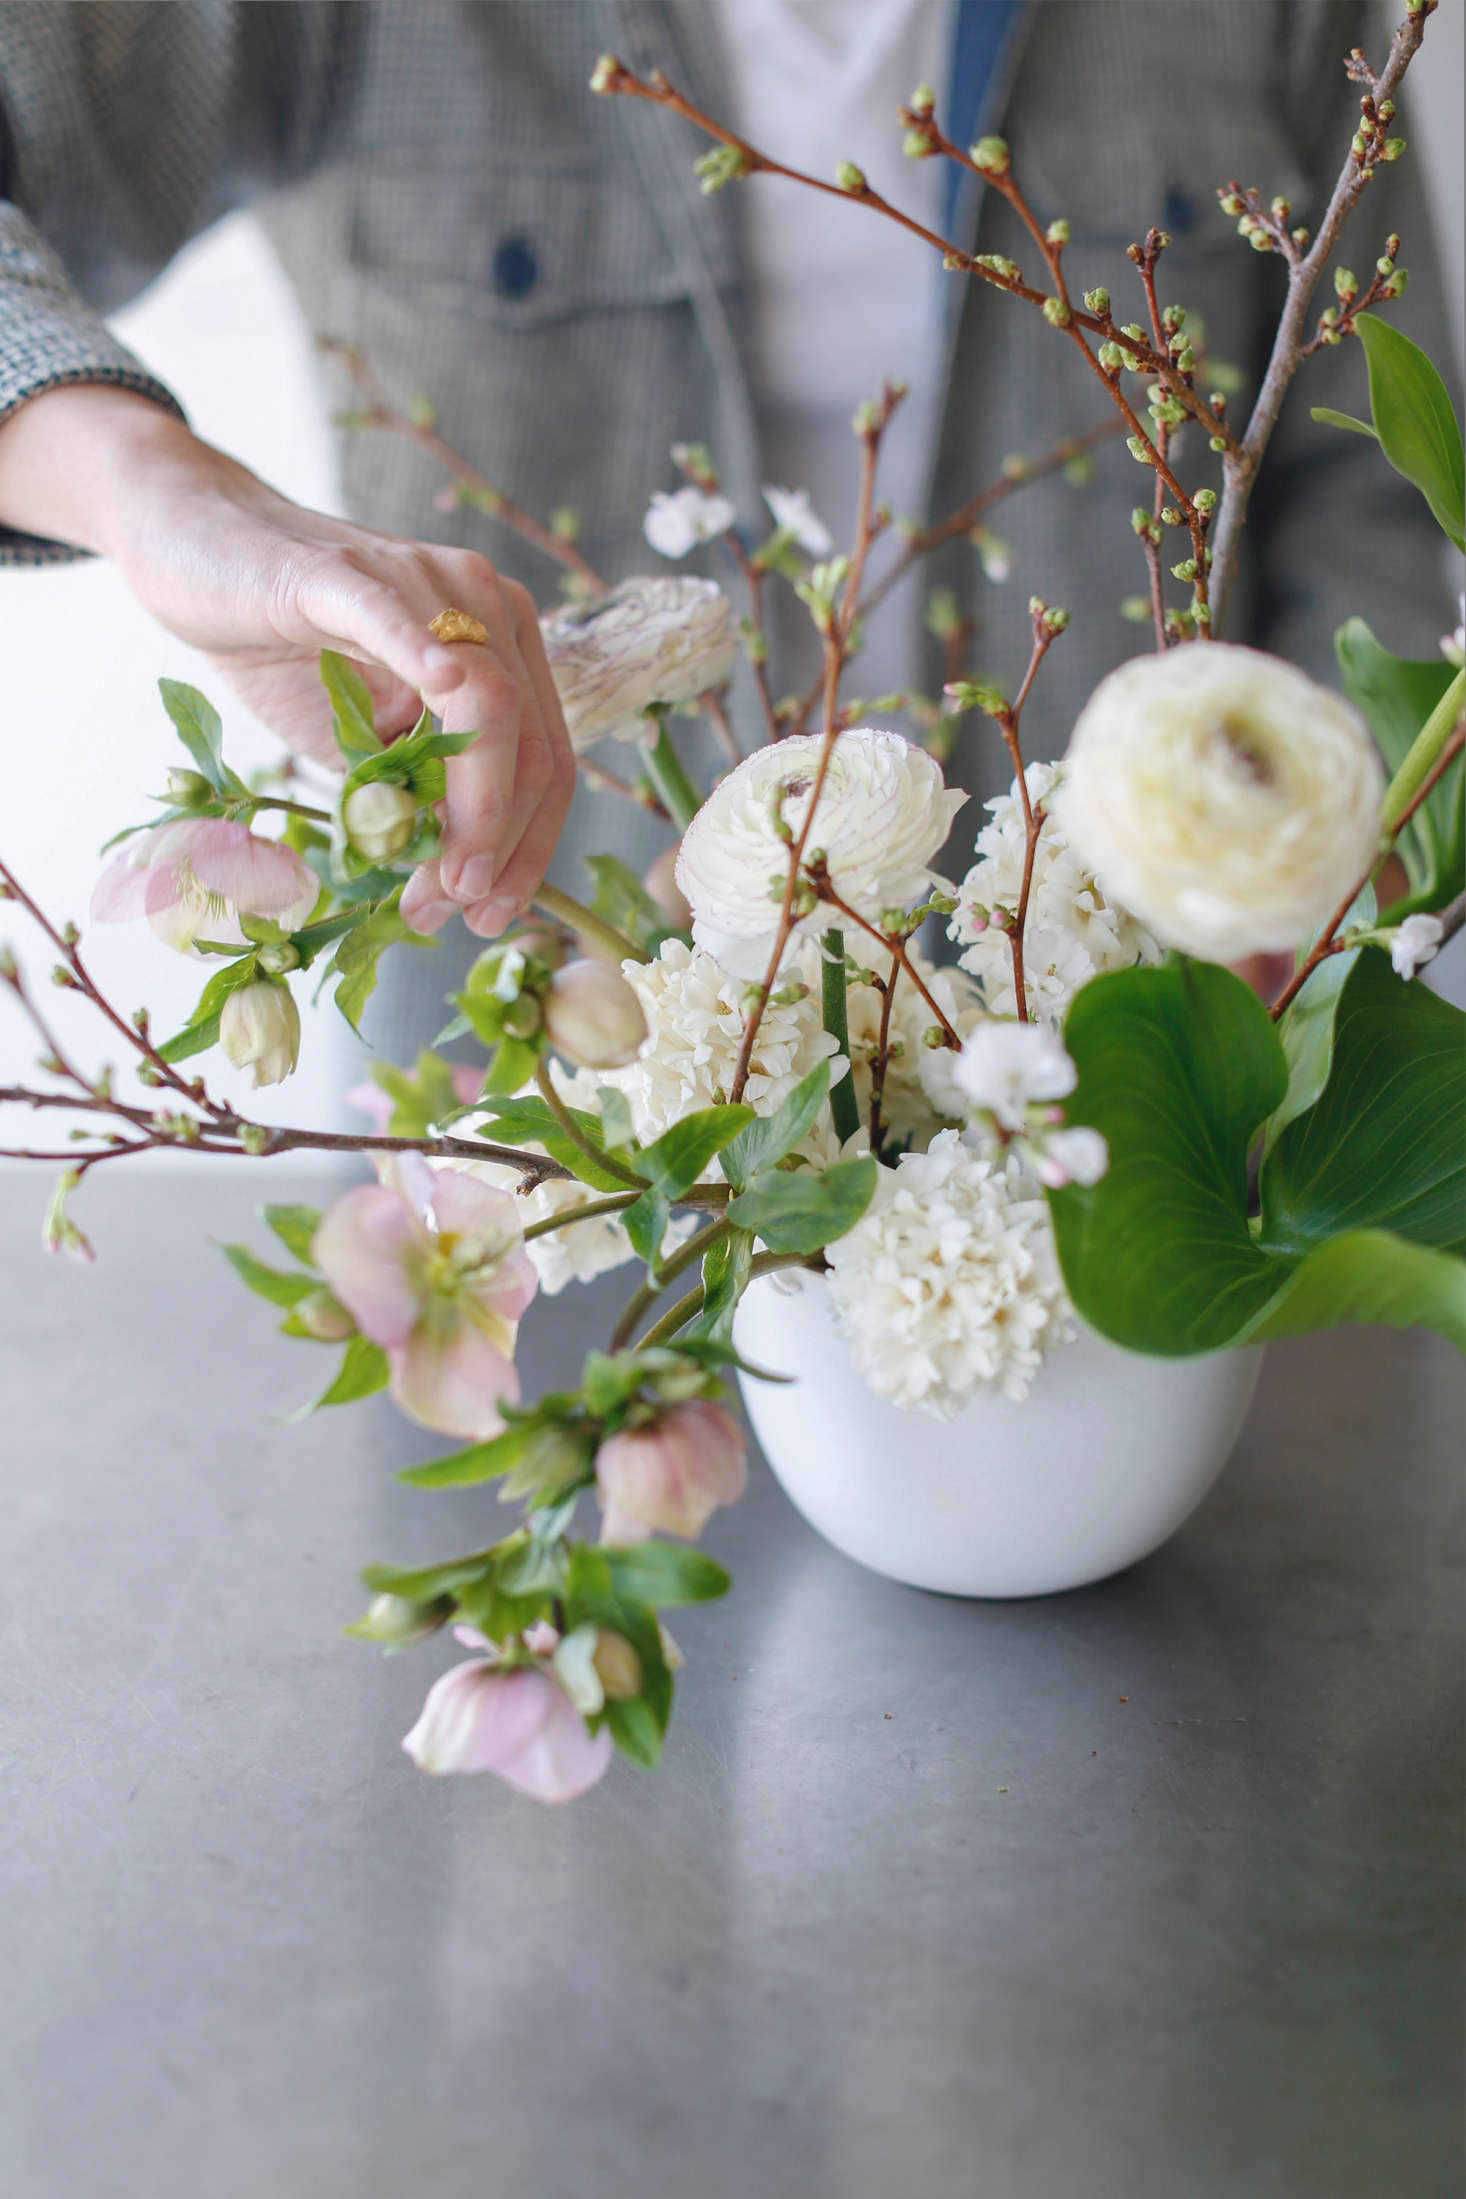 Flower Arrangements 101 A Crash Course For Easy And Elegant Florals Gardenista